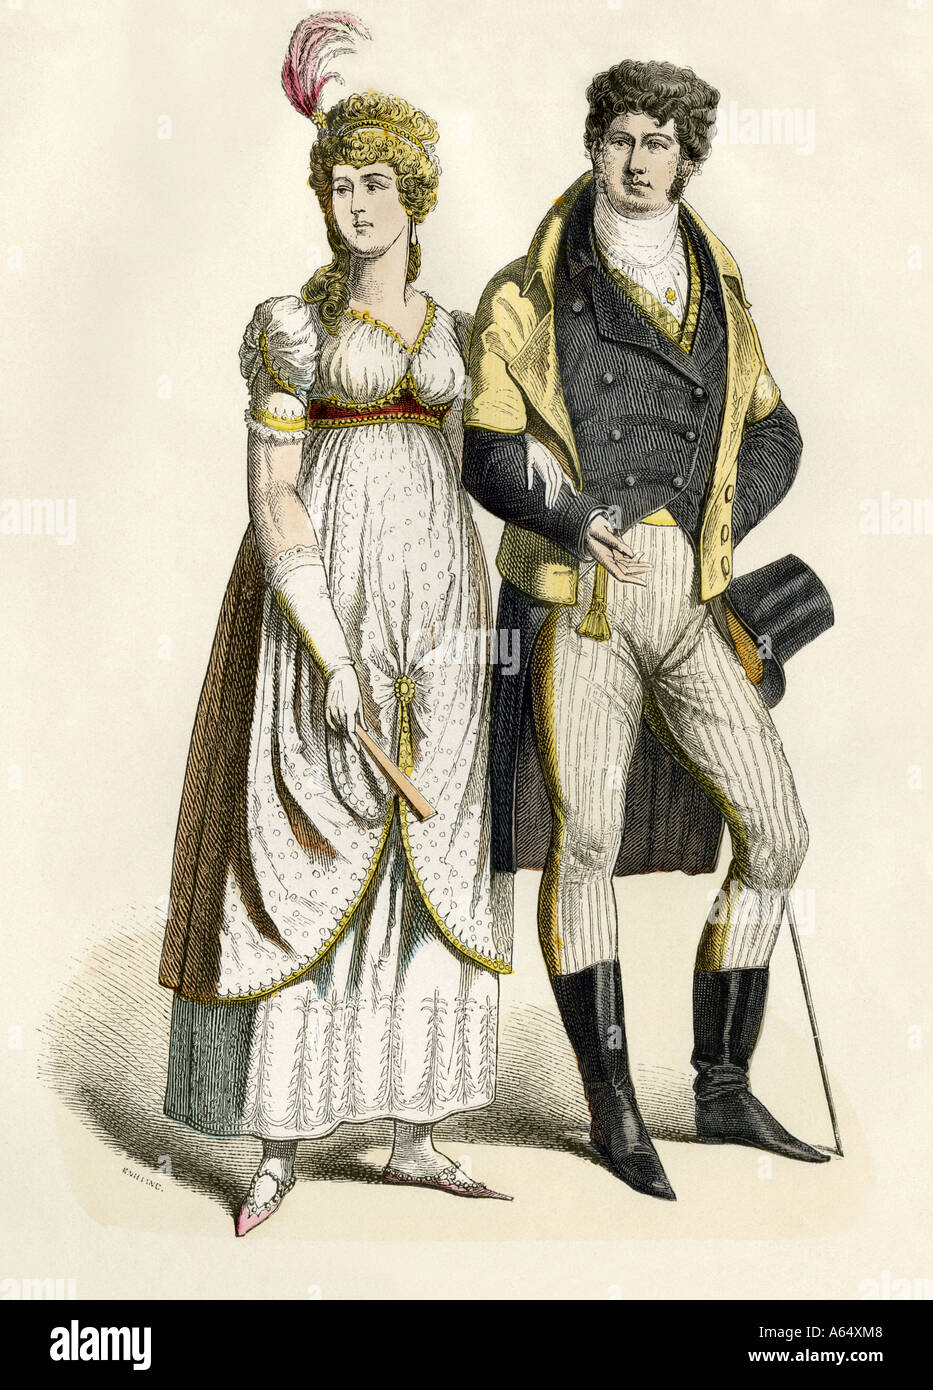 Fashionable German couple about 1800. Hand-colored print - Stock Image